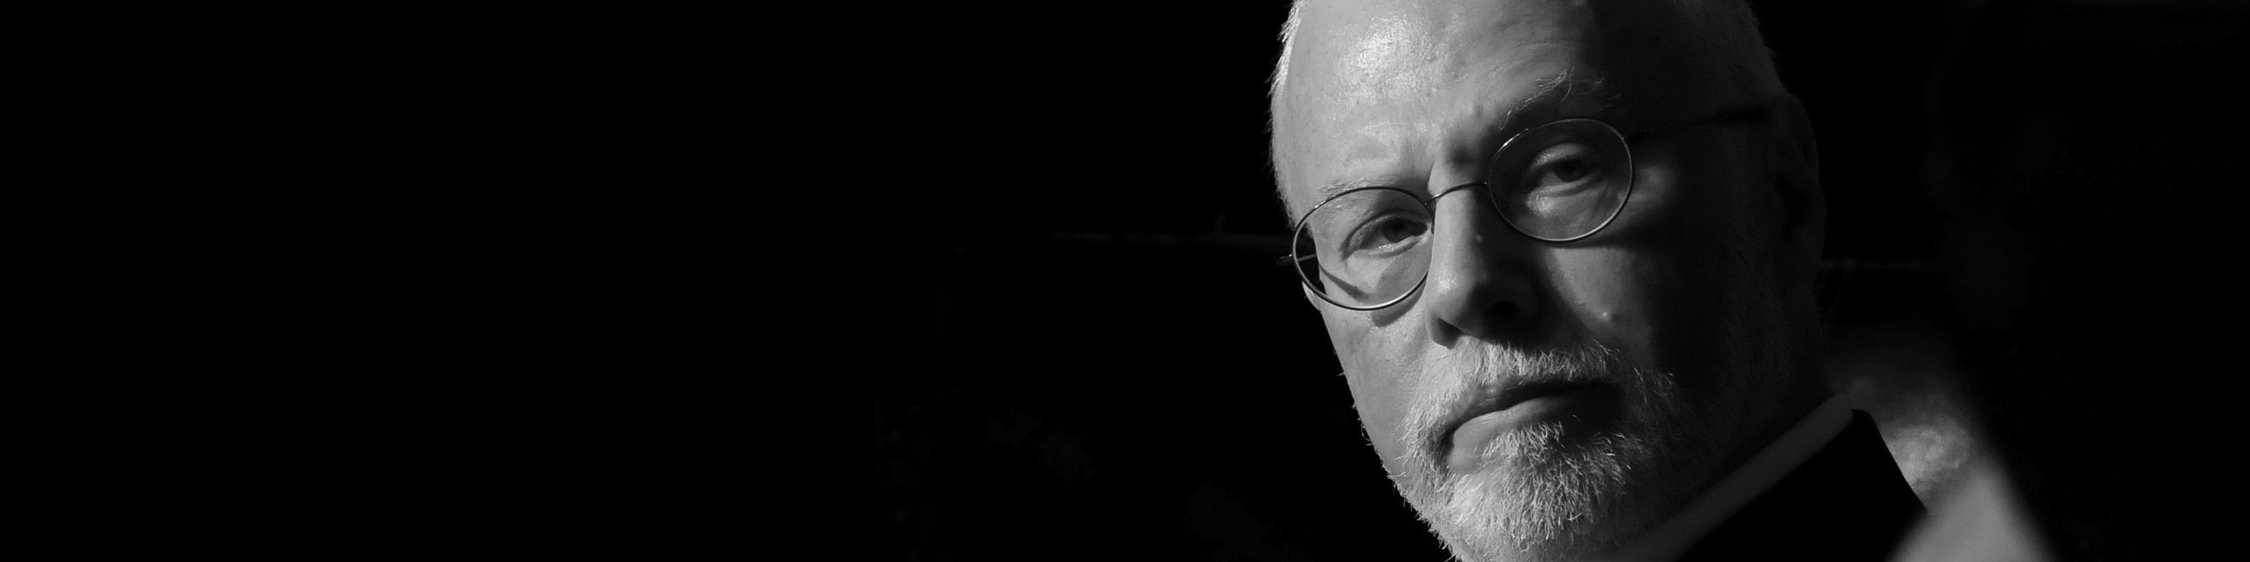 Why the World's CEOs Fear Paul Singer